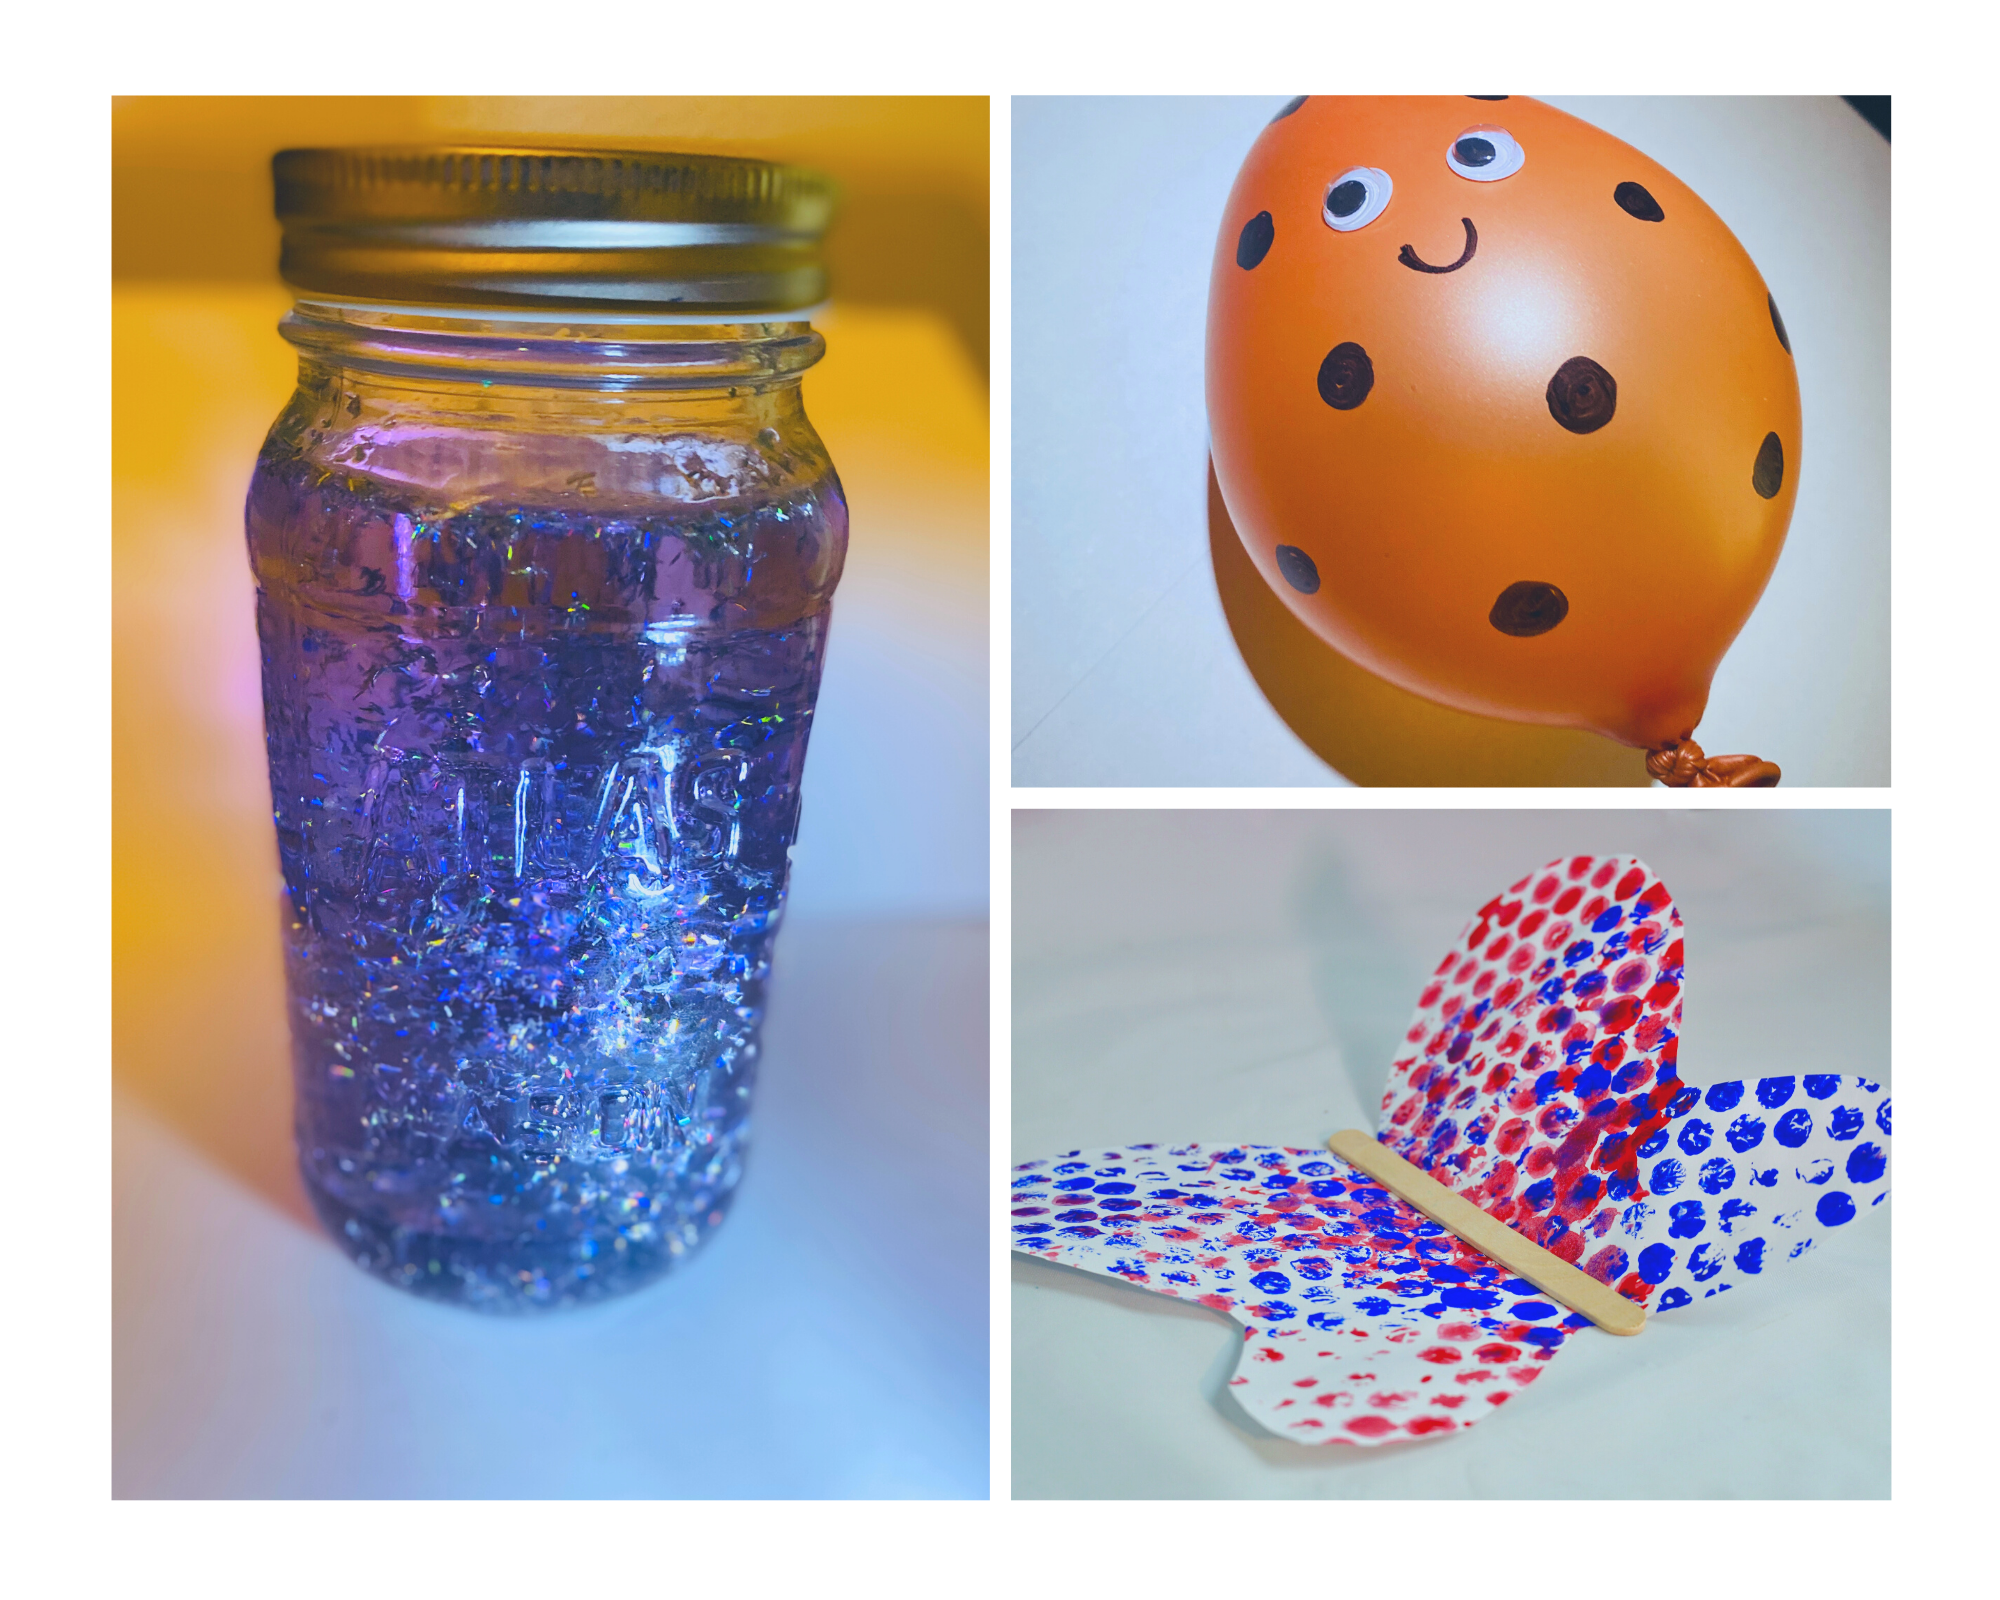 Learn to make stress balls, soap jellies, and slime!